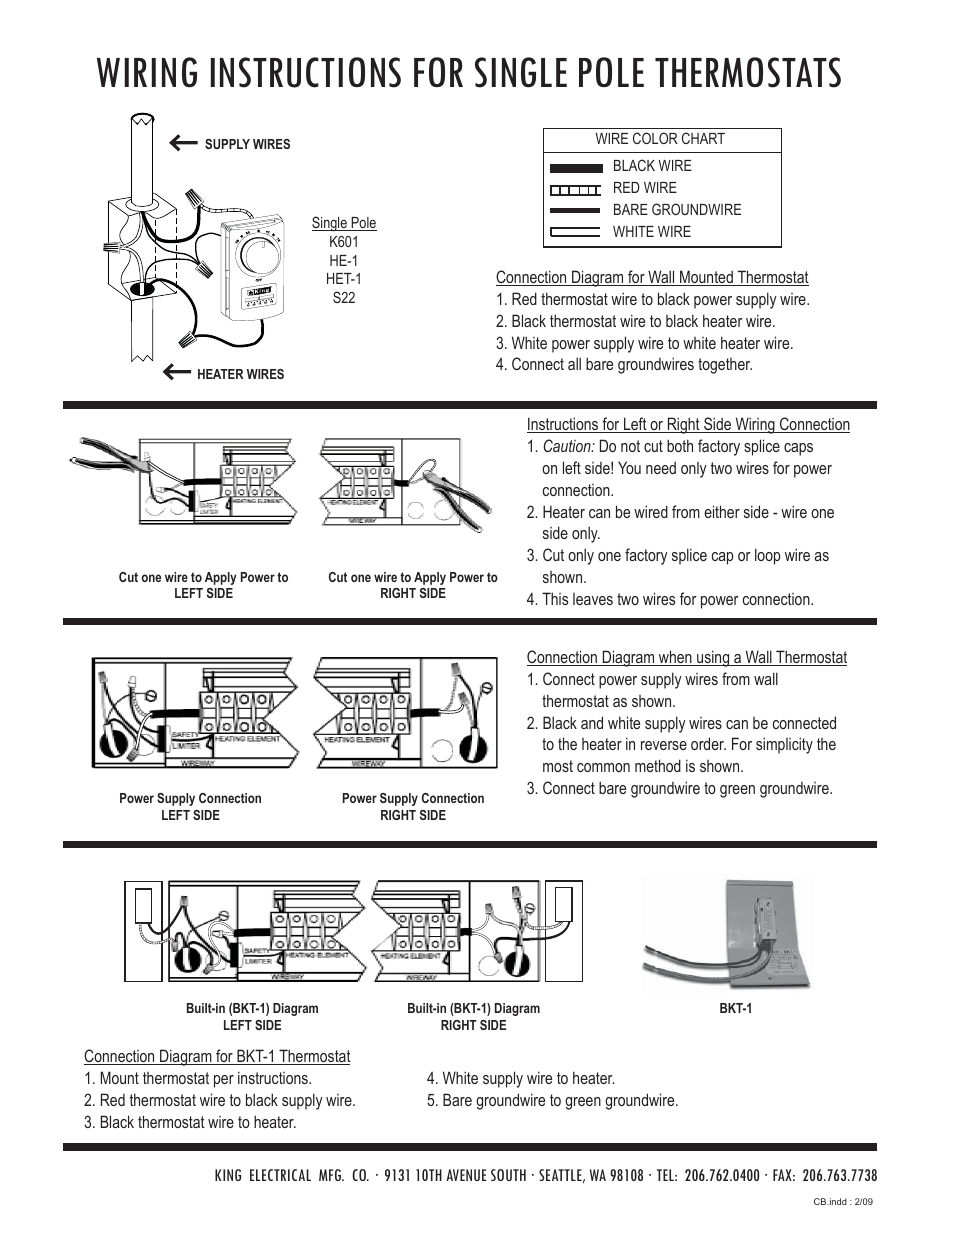 Wiring instructions for single pole thermostats | King Electric Model CB  User Manual | Page 2 / 4